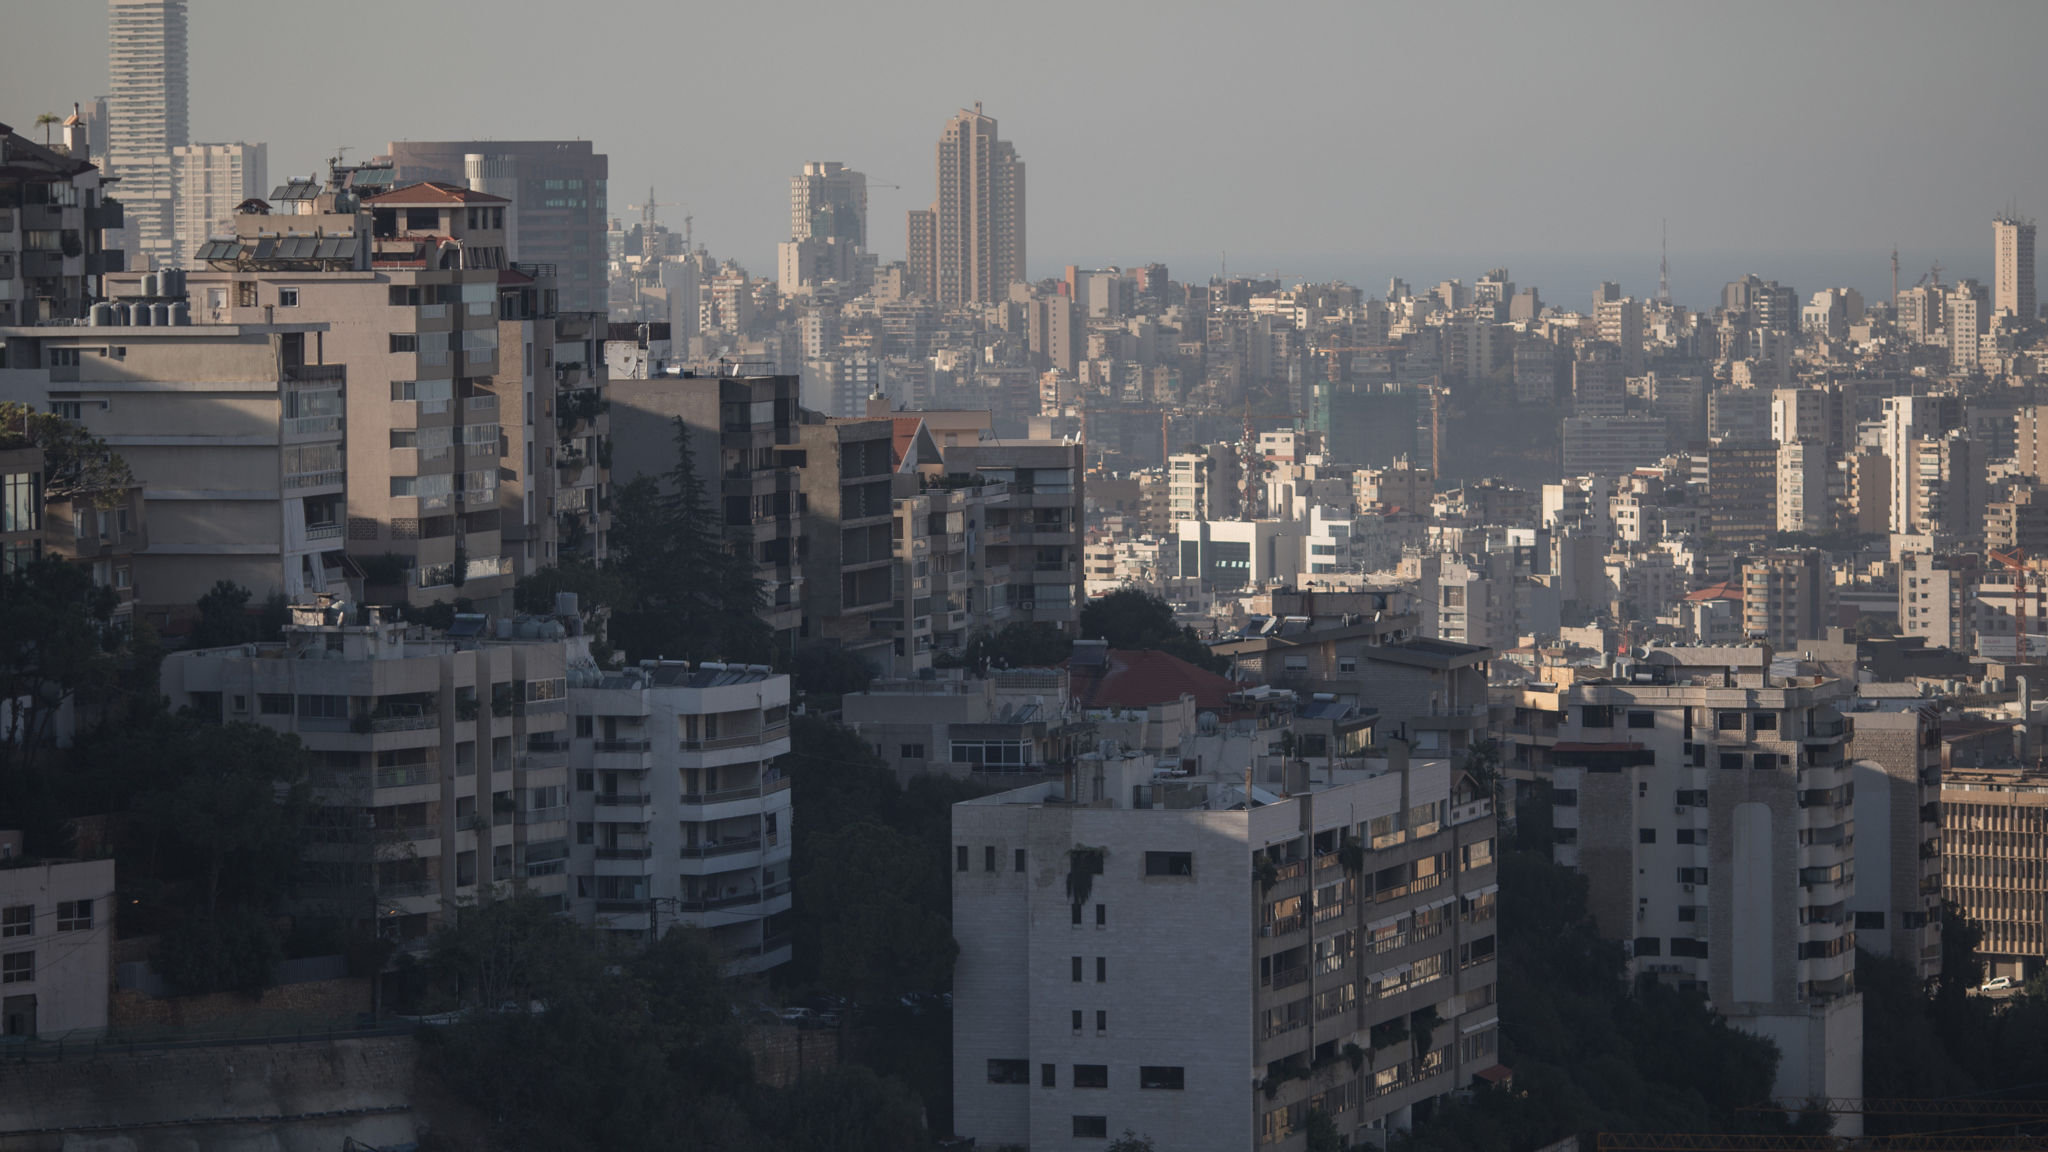 Lebanon is heading for default on its debts, warns Fitch